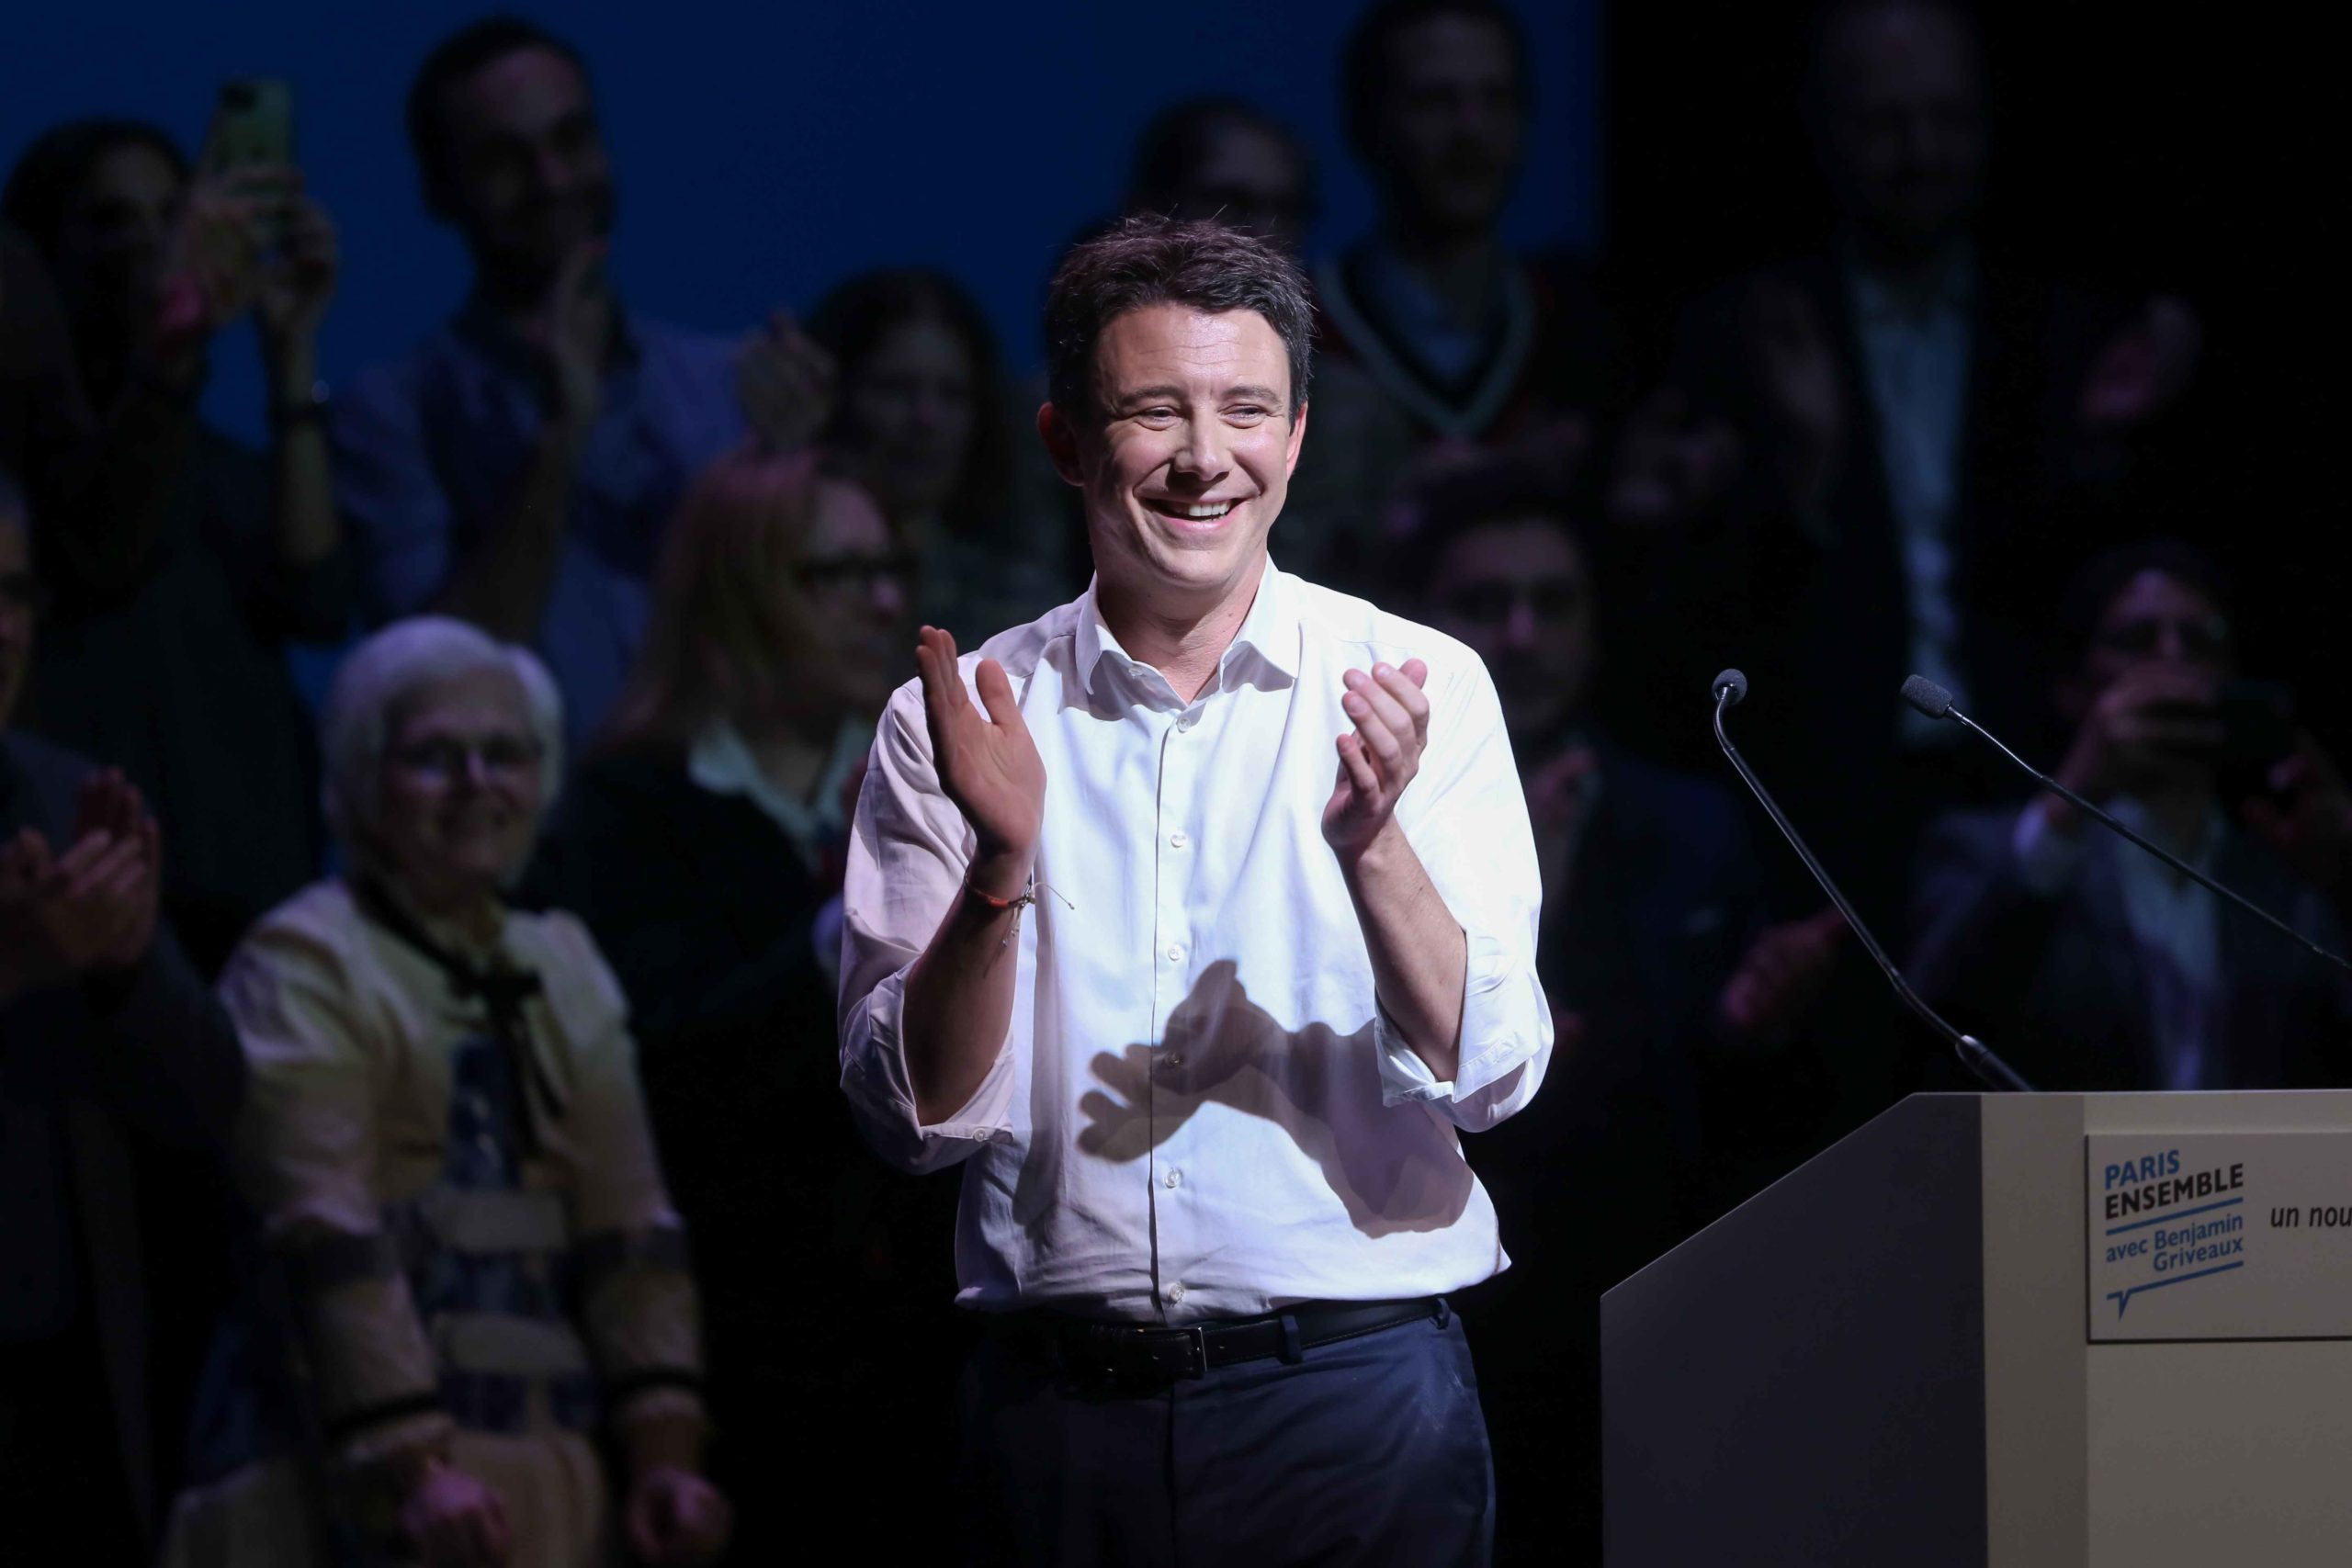 La Republique en Marche (LREM) candidate for the Paris 2020 mayoral election Benjamin Griveaux addresses at the Bobino theater, in Paris, on January 27, 2020. Benjamin Griveaux is the official LREM candidate for the Paris 2020 mayoral election but the math